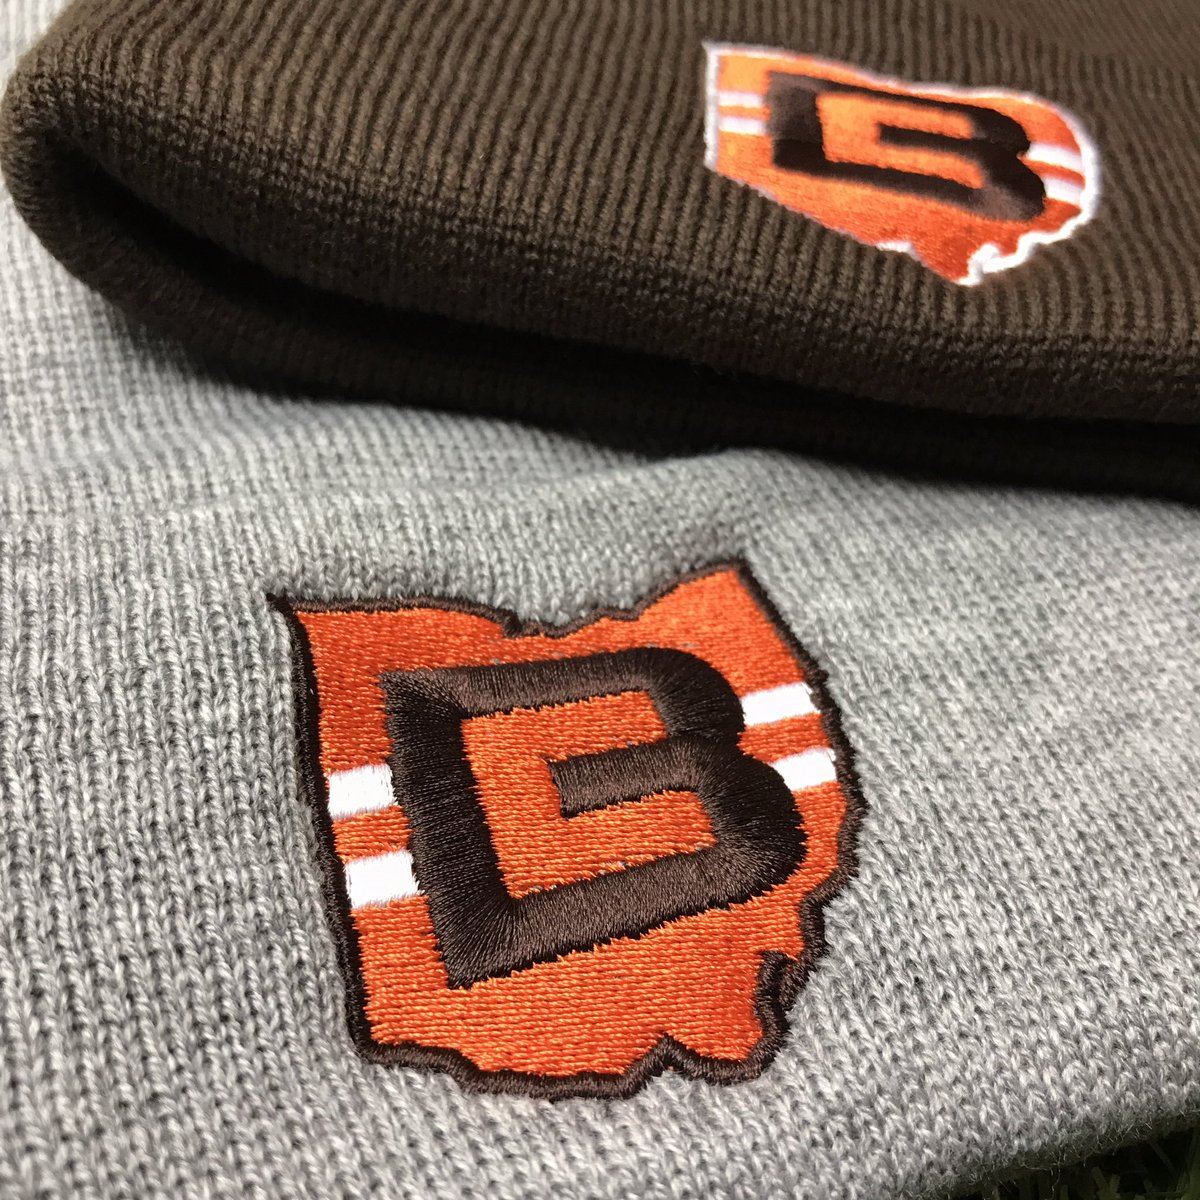 614b5afeab7636 Our brand new CB Ohio hats are available in winter beanies, snap backs, dad  hats and a brand new mesh hat!pic.twitter.com/1nlp4hO2cN